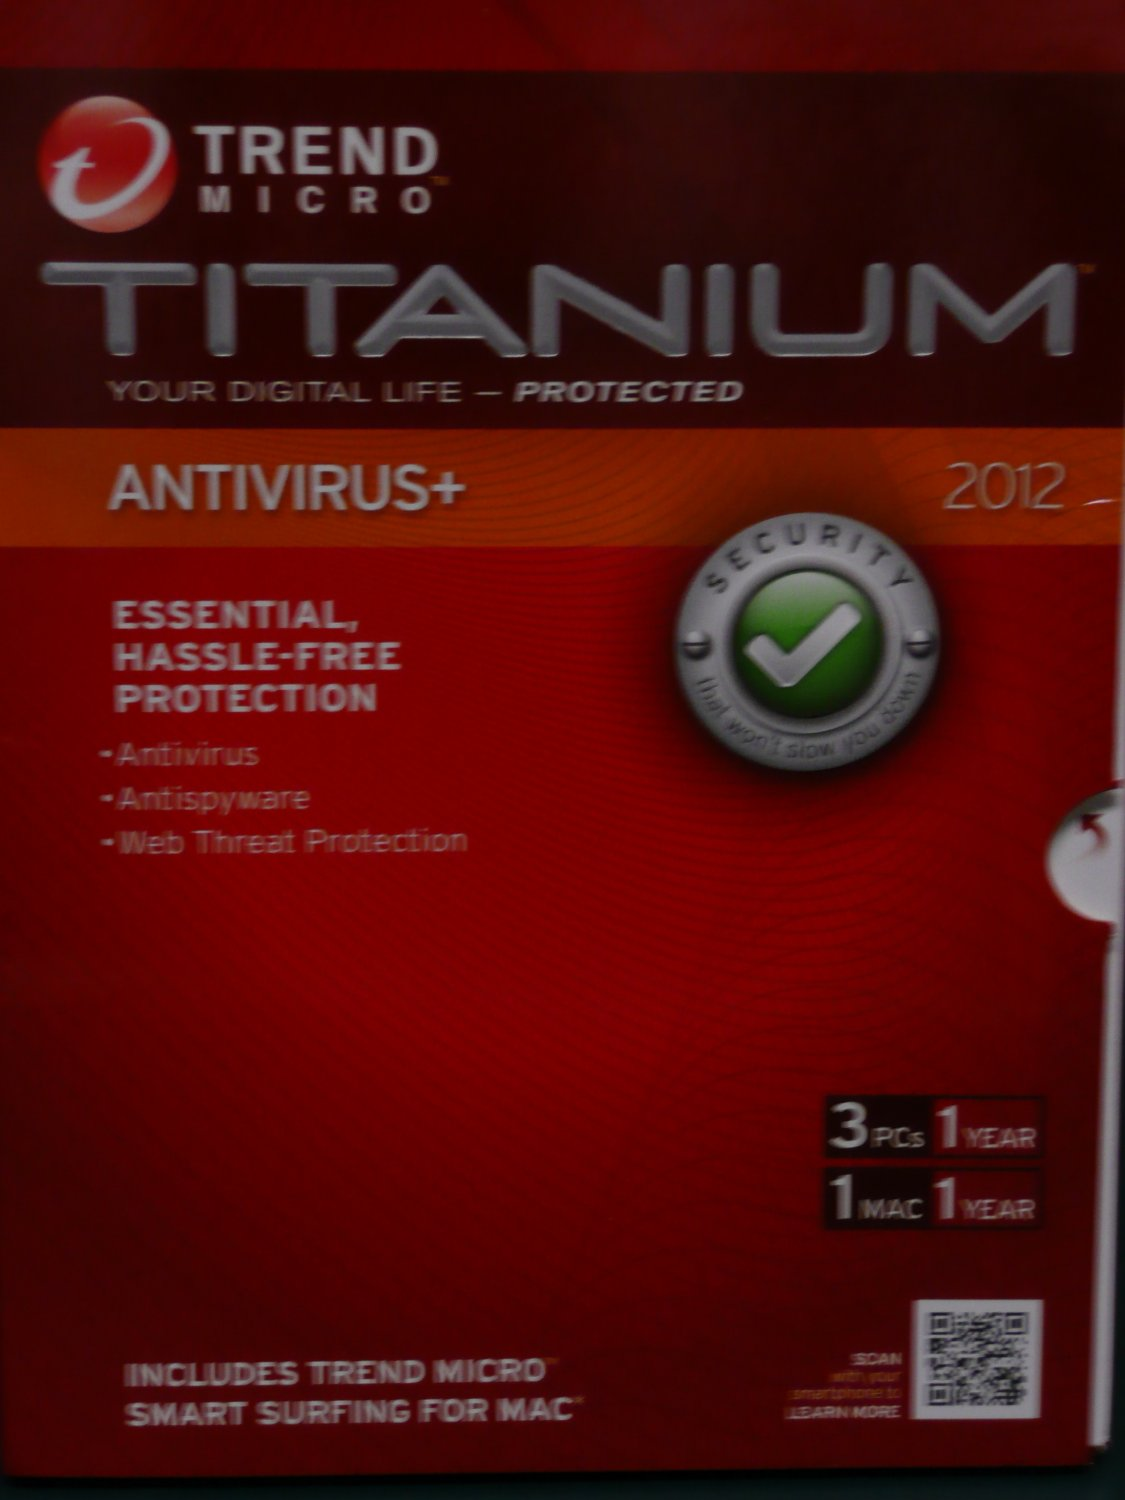 Trend Micro� Titanium Antivirus Plus + 2012, 3 Users + free 2013 upgrade